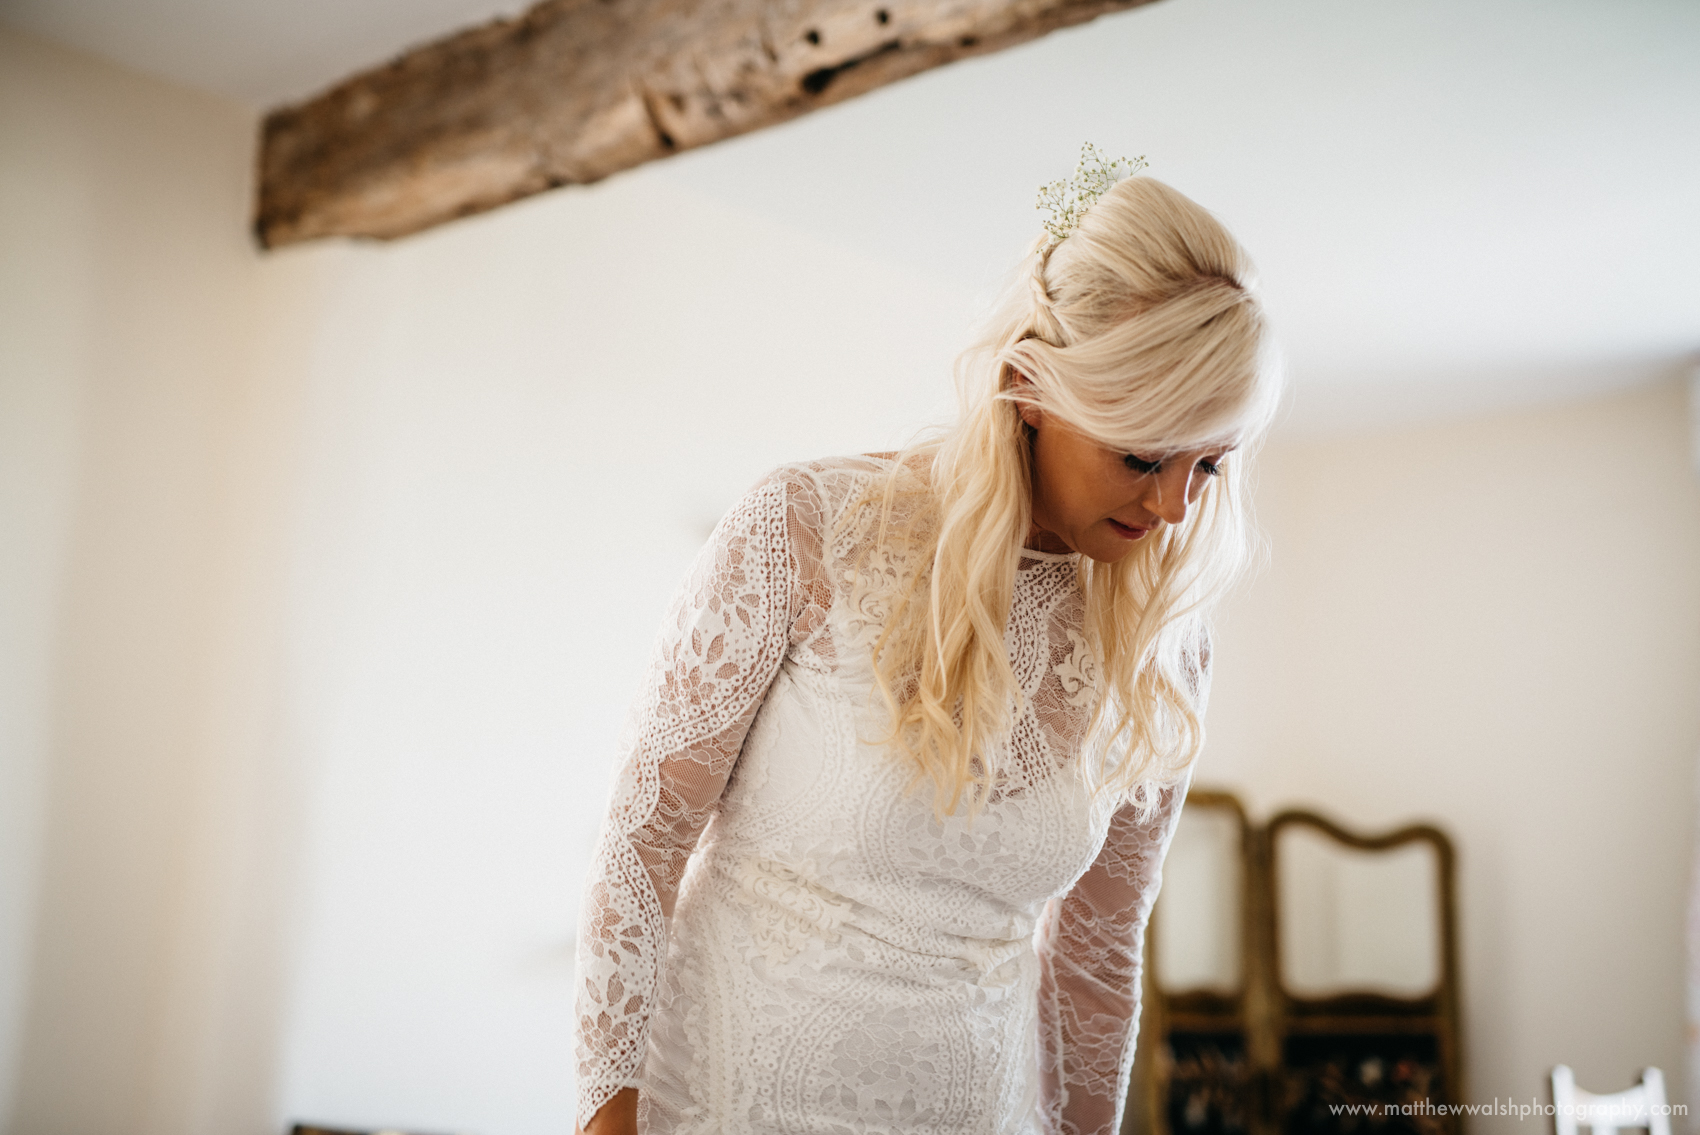 The bride looking elegant in her beautiful lace wedding dress